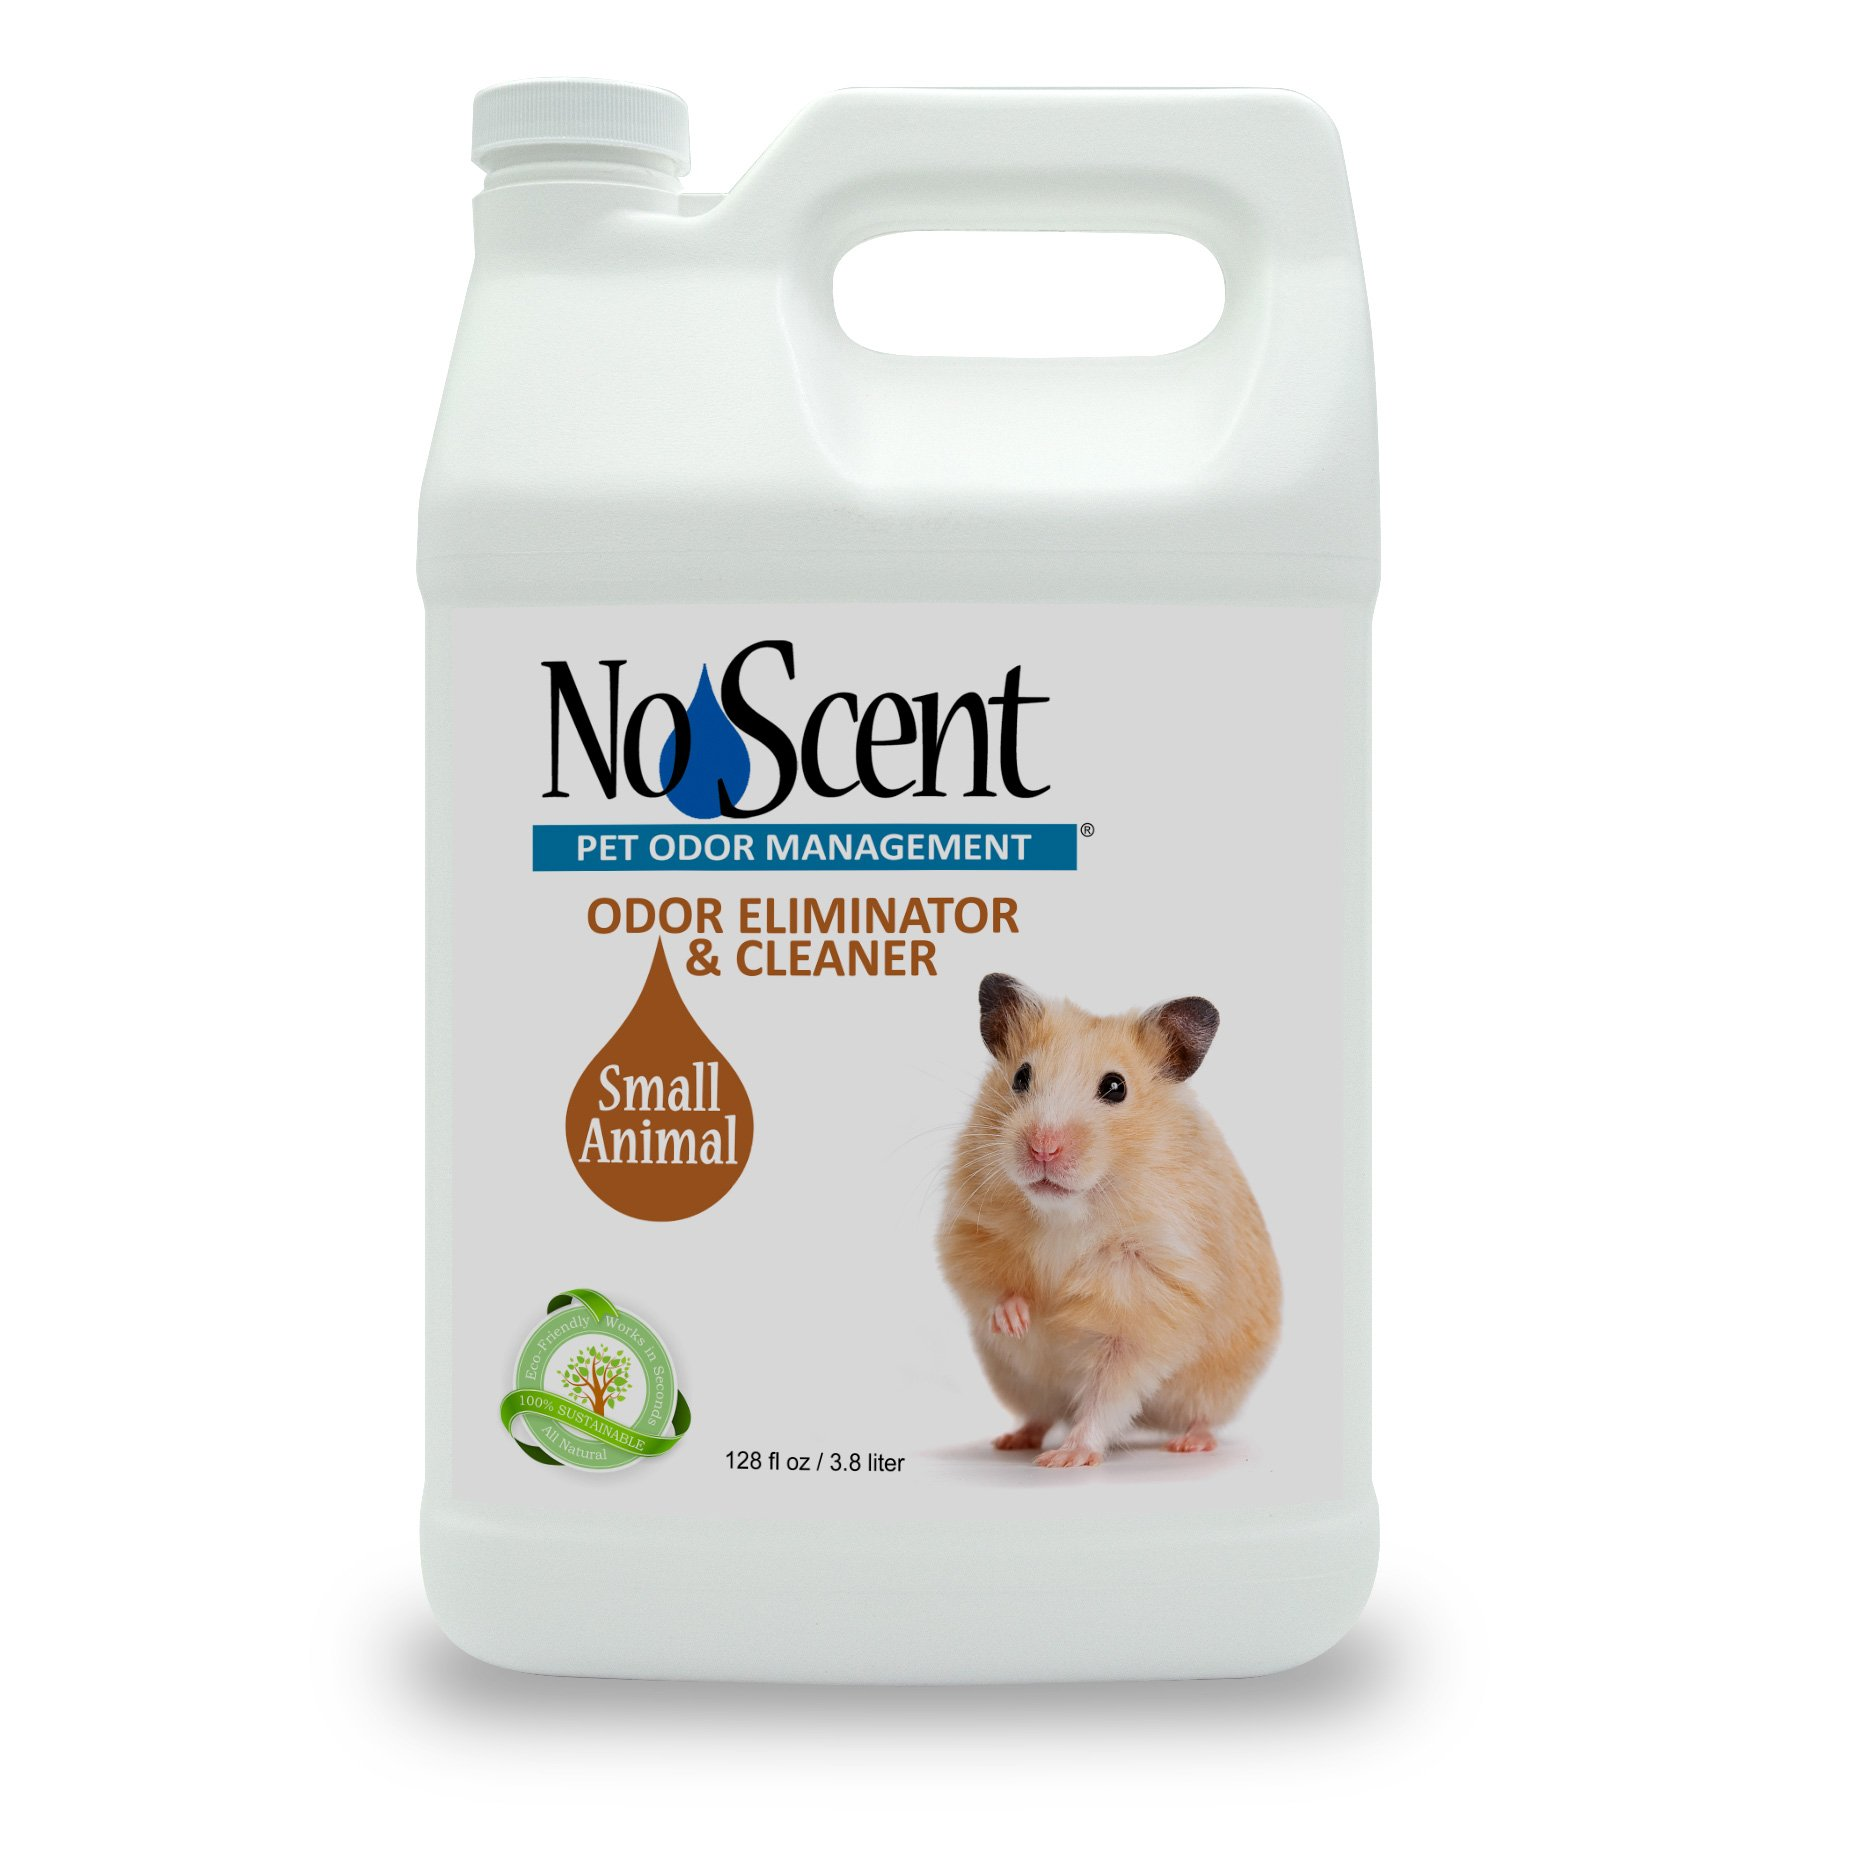 No Scent Small Animal - Professional Pet Waste Odor Eliminator & Cleaner - Safe All Natural Probiotic & Enzyme Formula Smell Remover for Hutches Tanks Enclosures Bedding Toys and Surfaces (1 gal) by No Scent Pet Odor Management